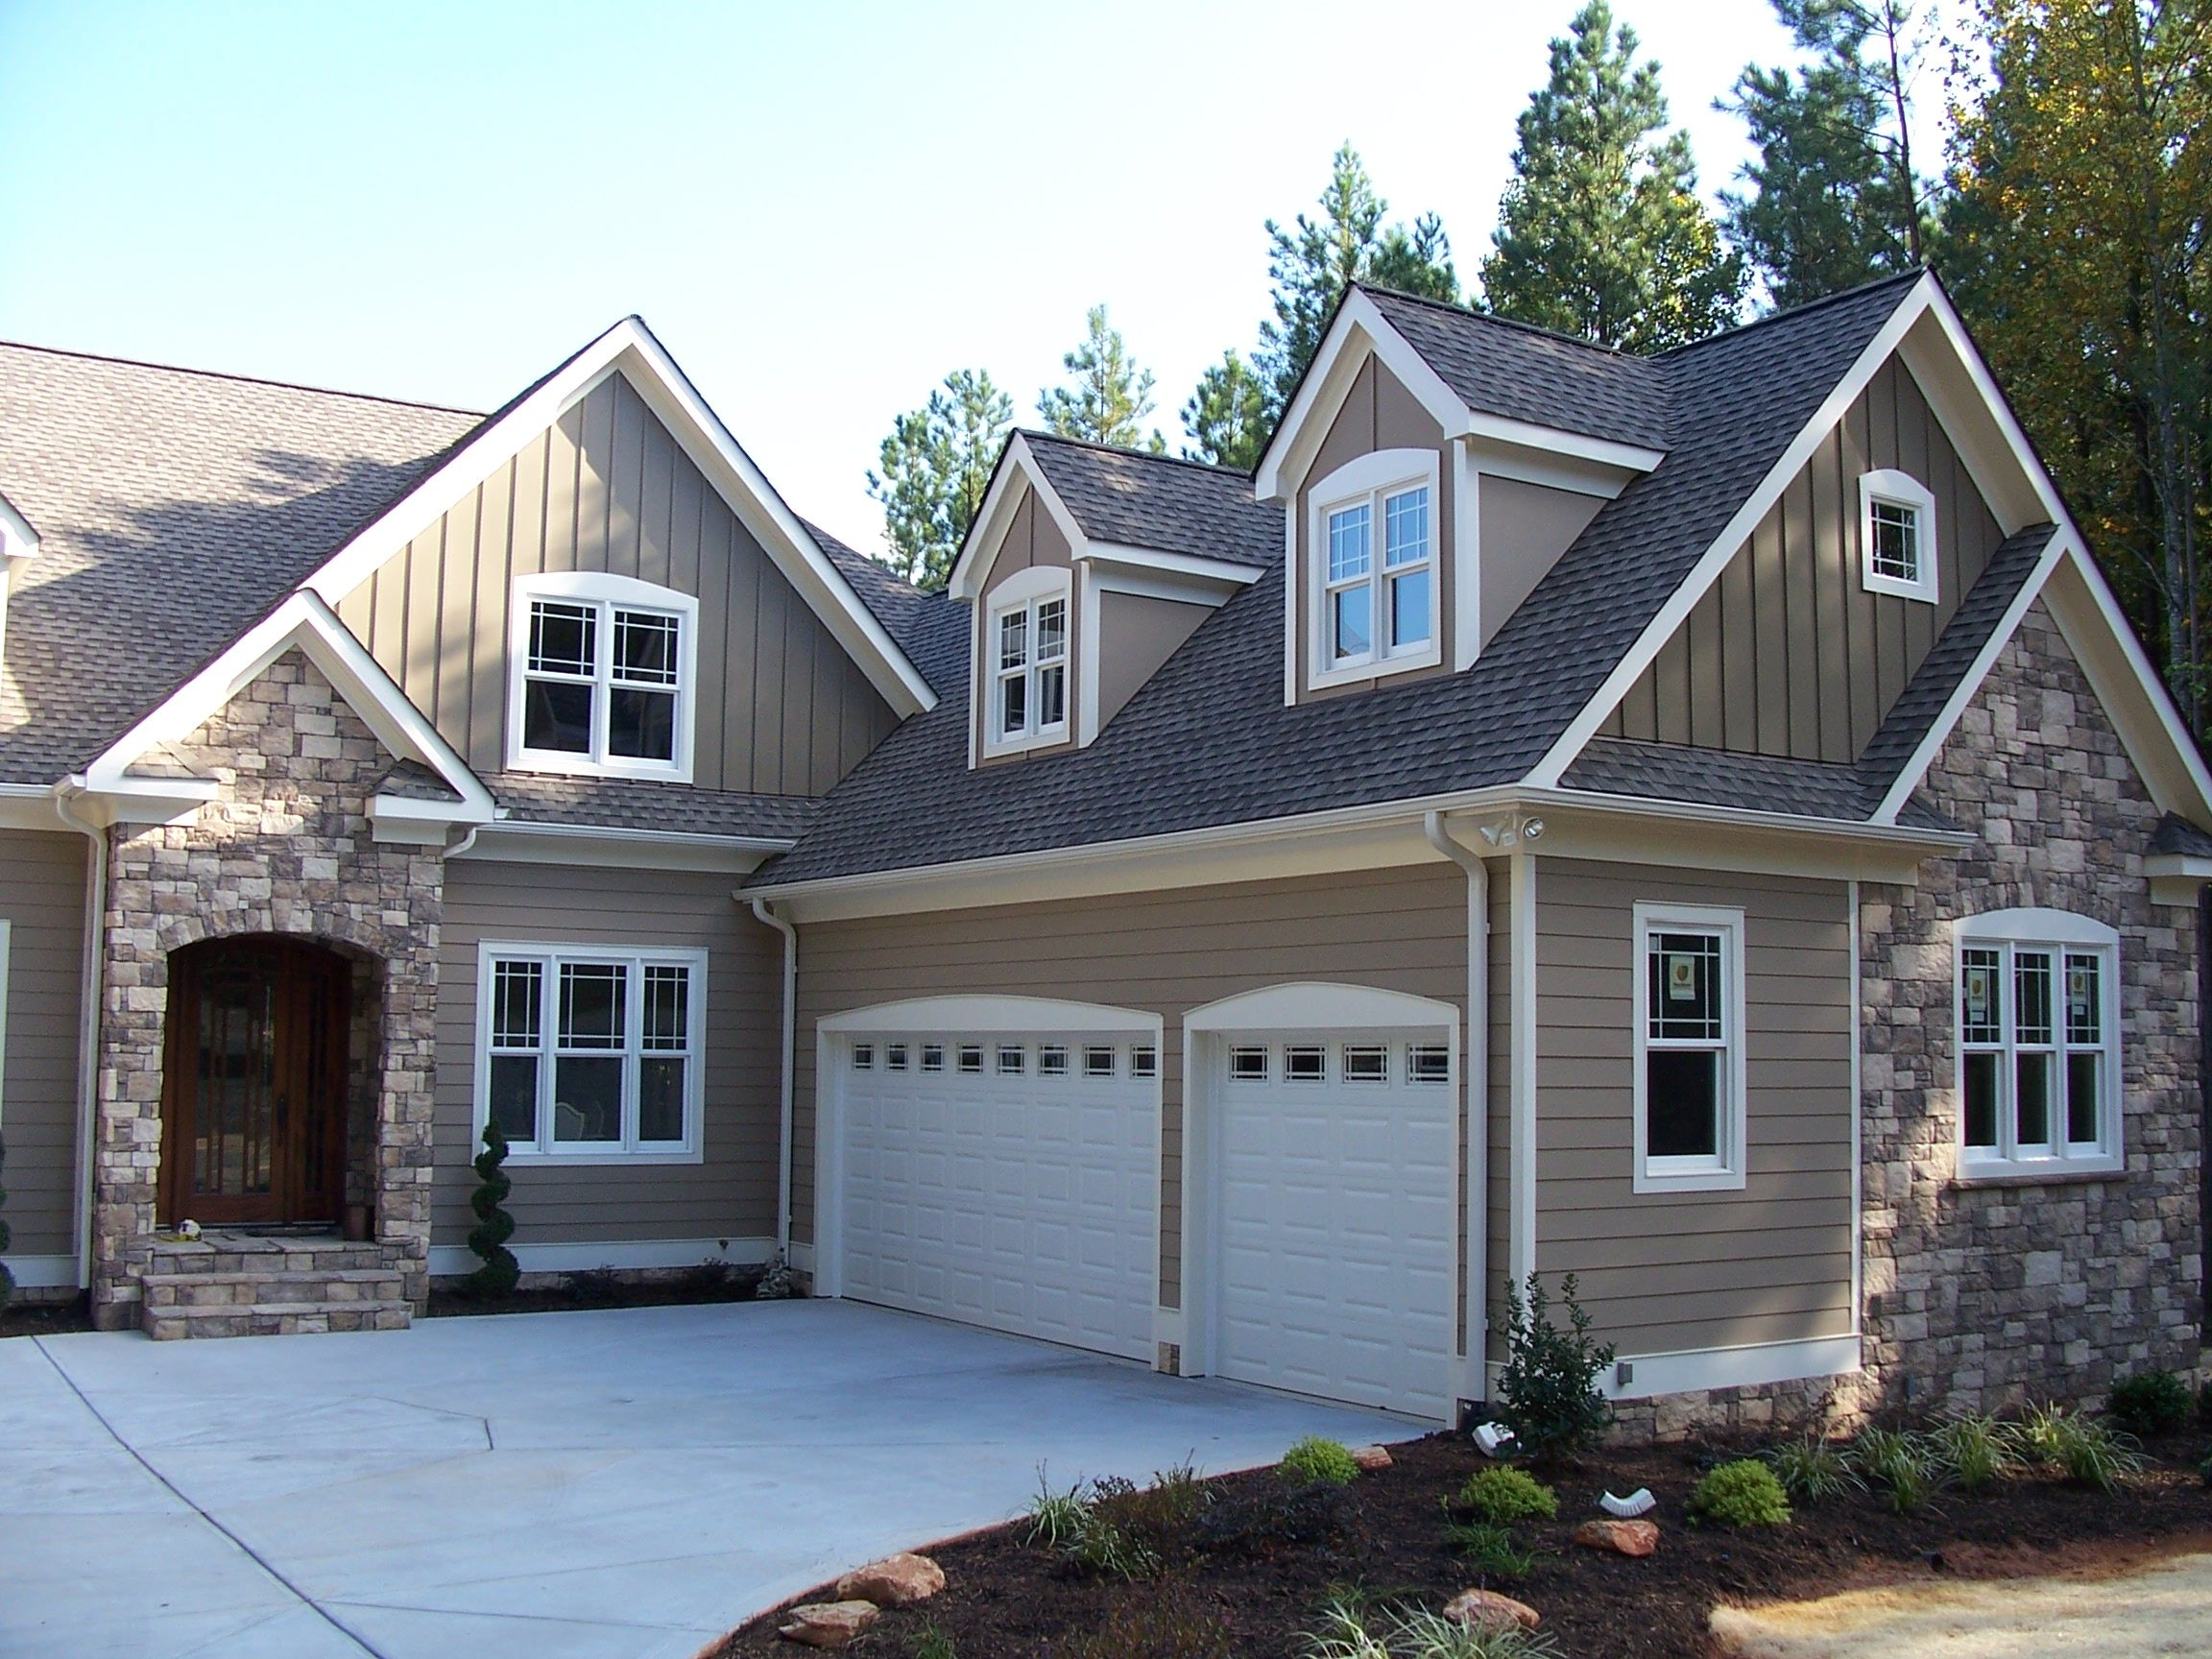 Terrific 17 Best Images About Lowes Exterior Color On Pinterest Exterior Largest Home Design Picture Inspirations Pitcheantrous